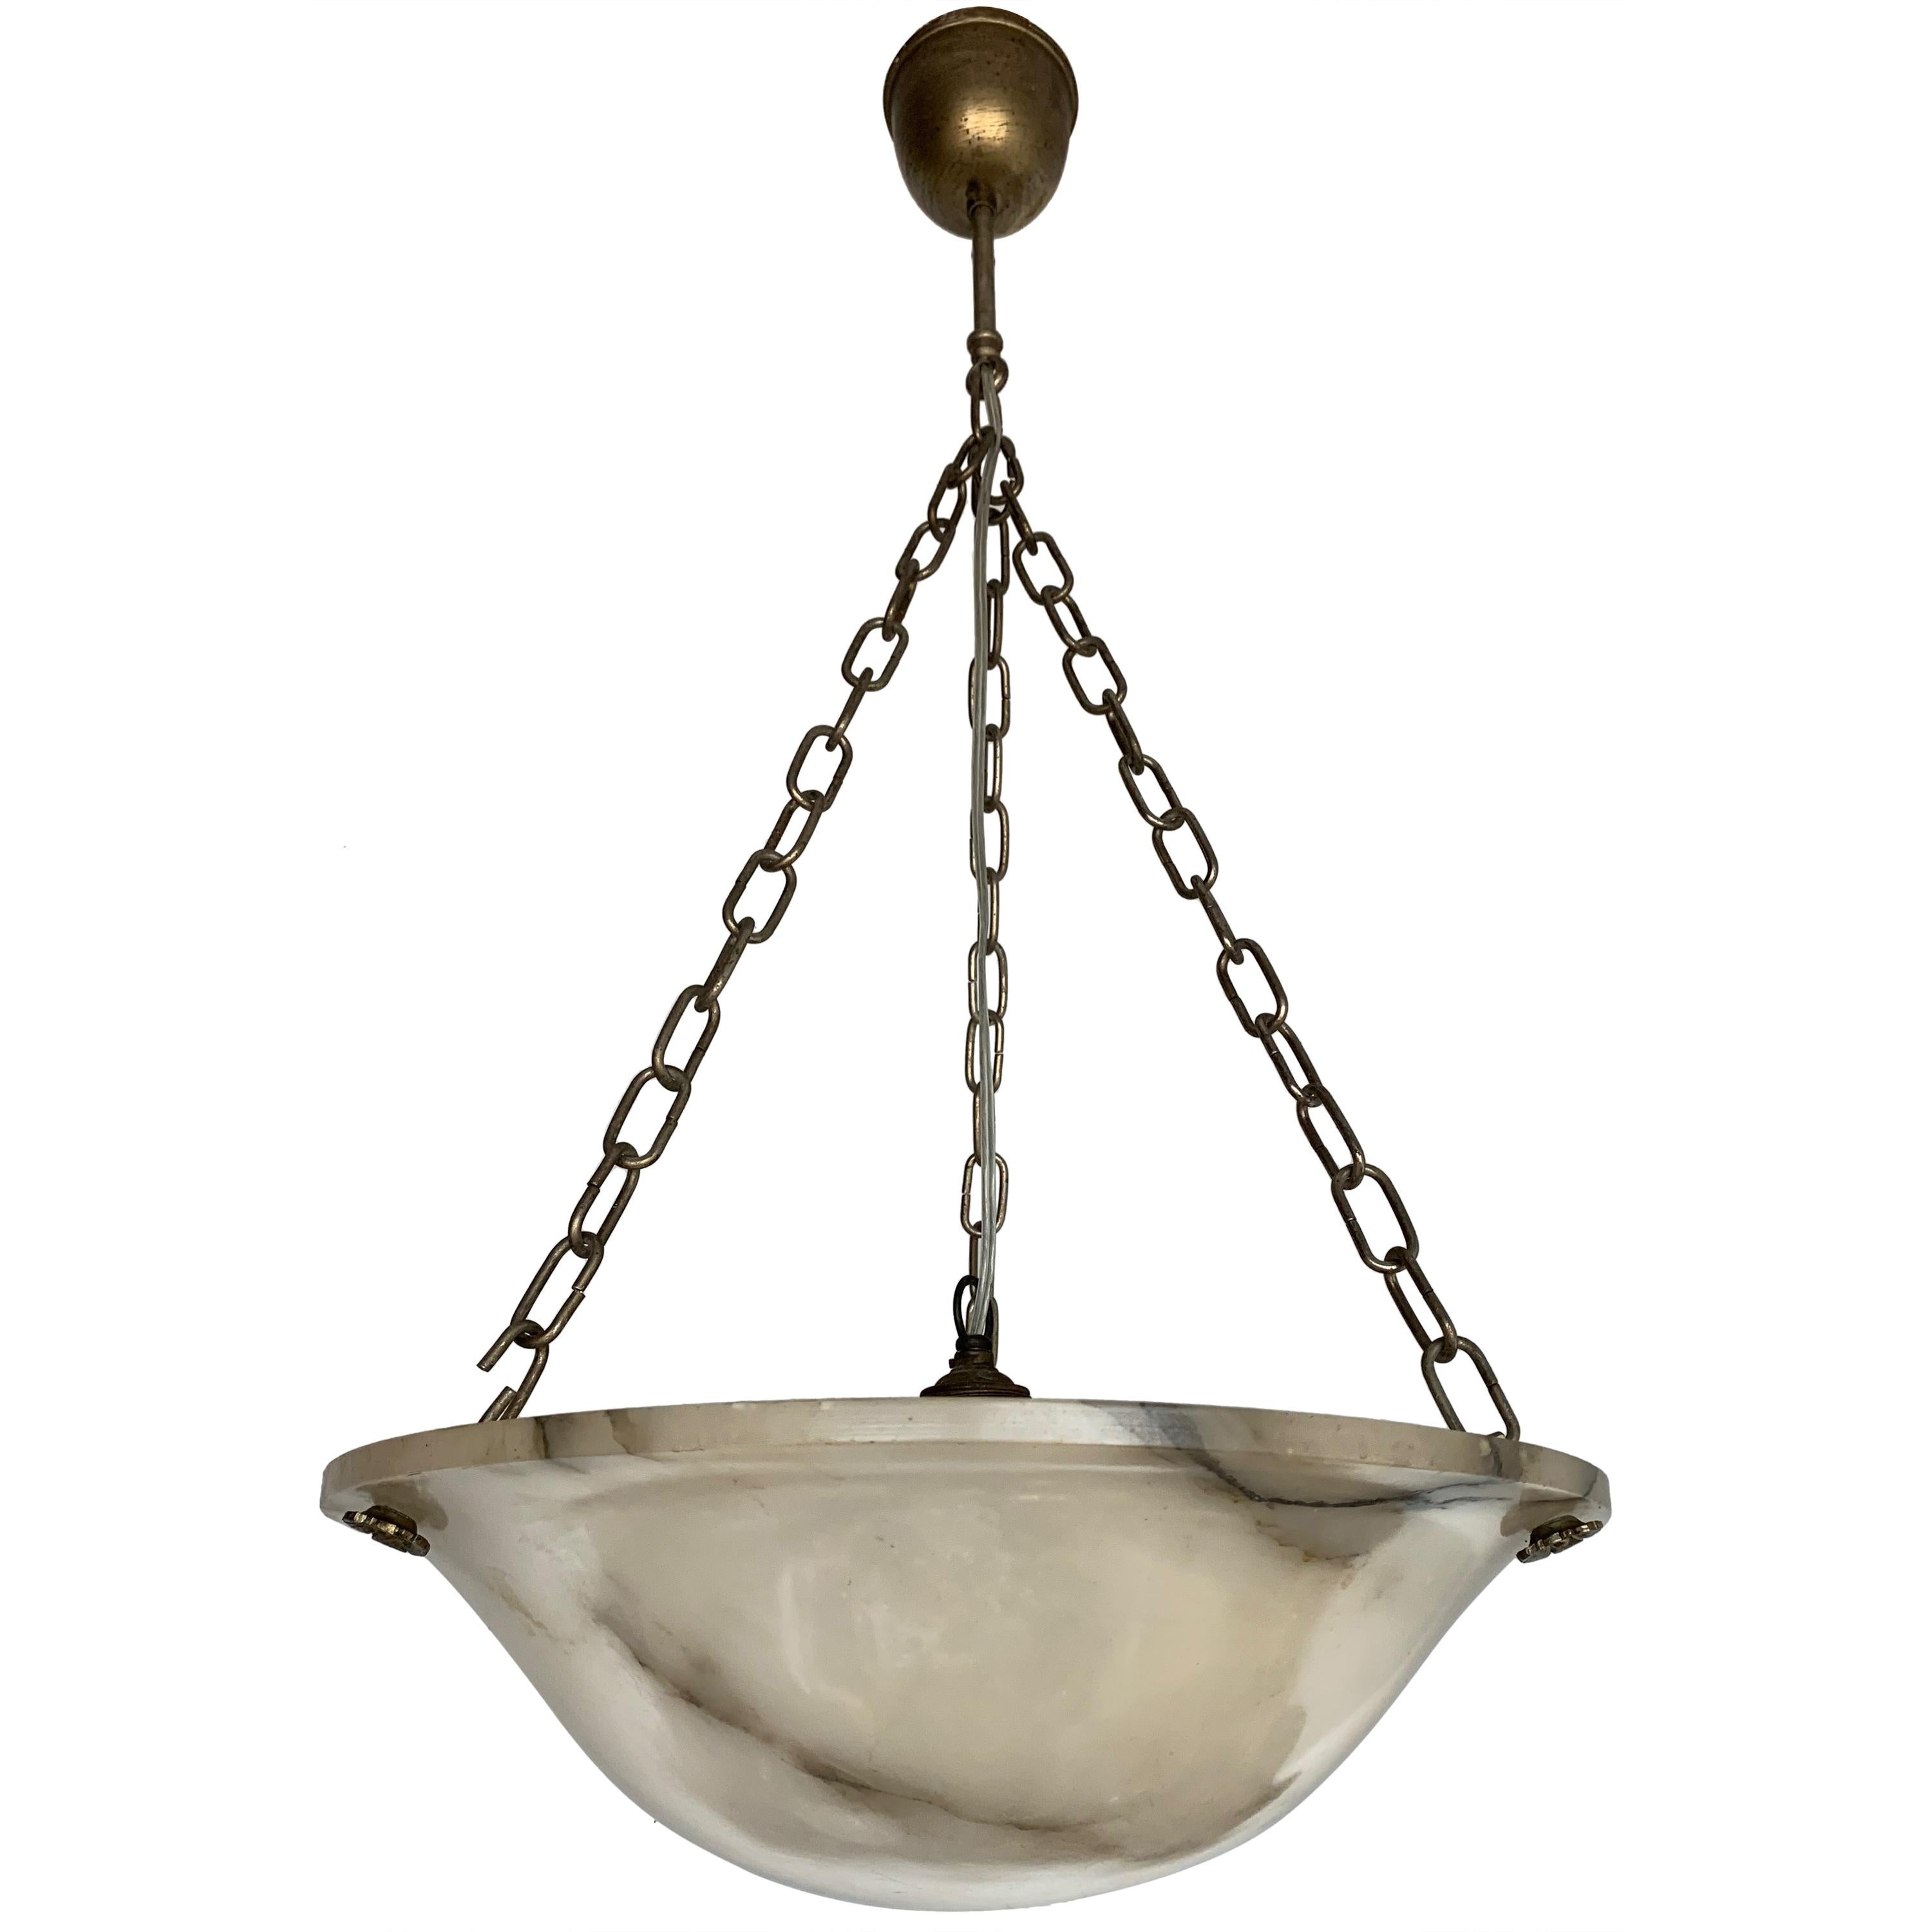 LOOK!! NEW BRONZE 3-CHAIN LIGHT FIXTURE VINTAGE ART DECO SHADE Three Chain